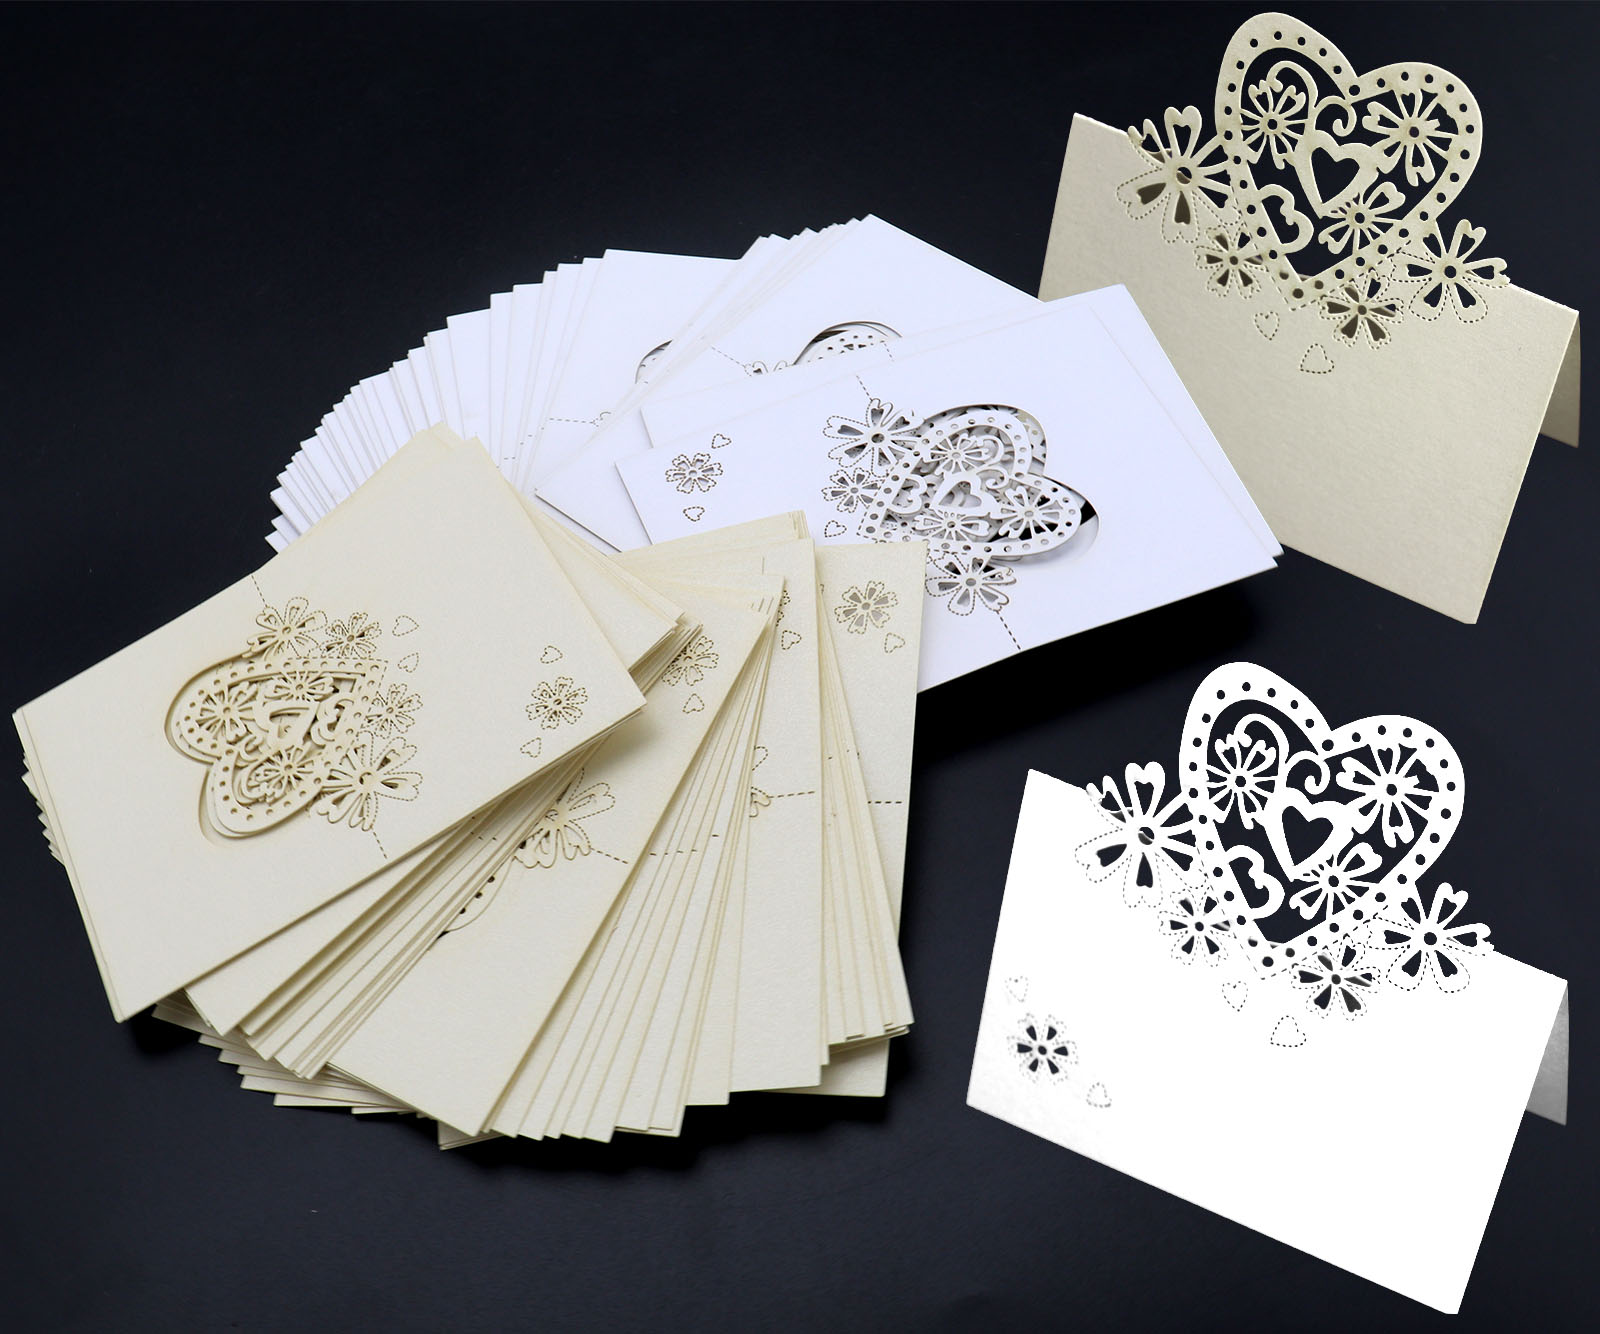 10PCS Heart Wedding Name Place Cards For Wine Glass Cut On Pearlescent Card High